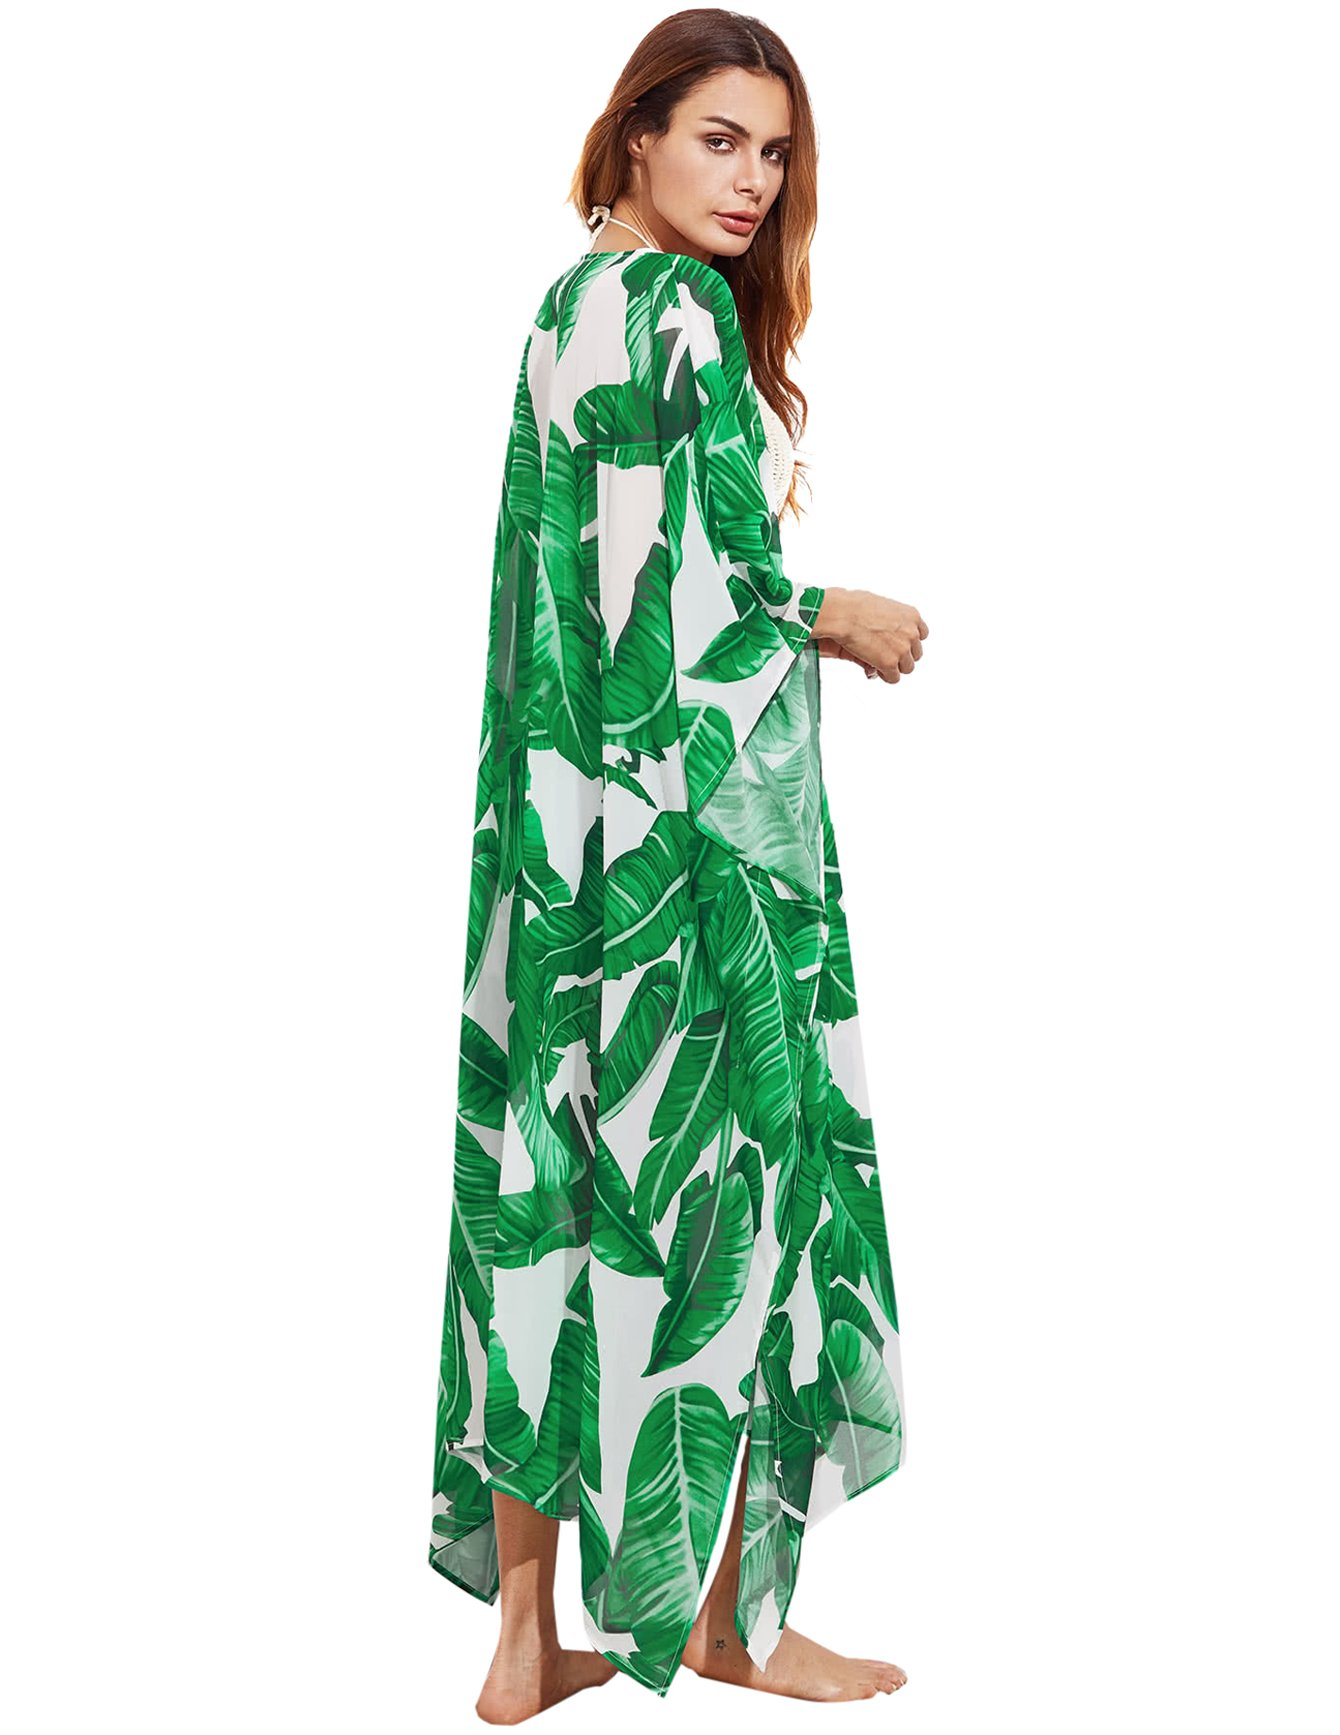 4ff3a6bcd3e SweatyRocks Women s Flowy Kimono Cardigan Open Front Maxi Dress Green 2 One  Size - KMC170516701-M   Cover-Ups   Clothing